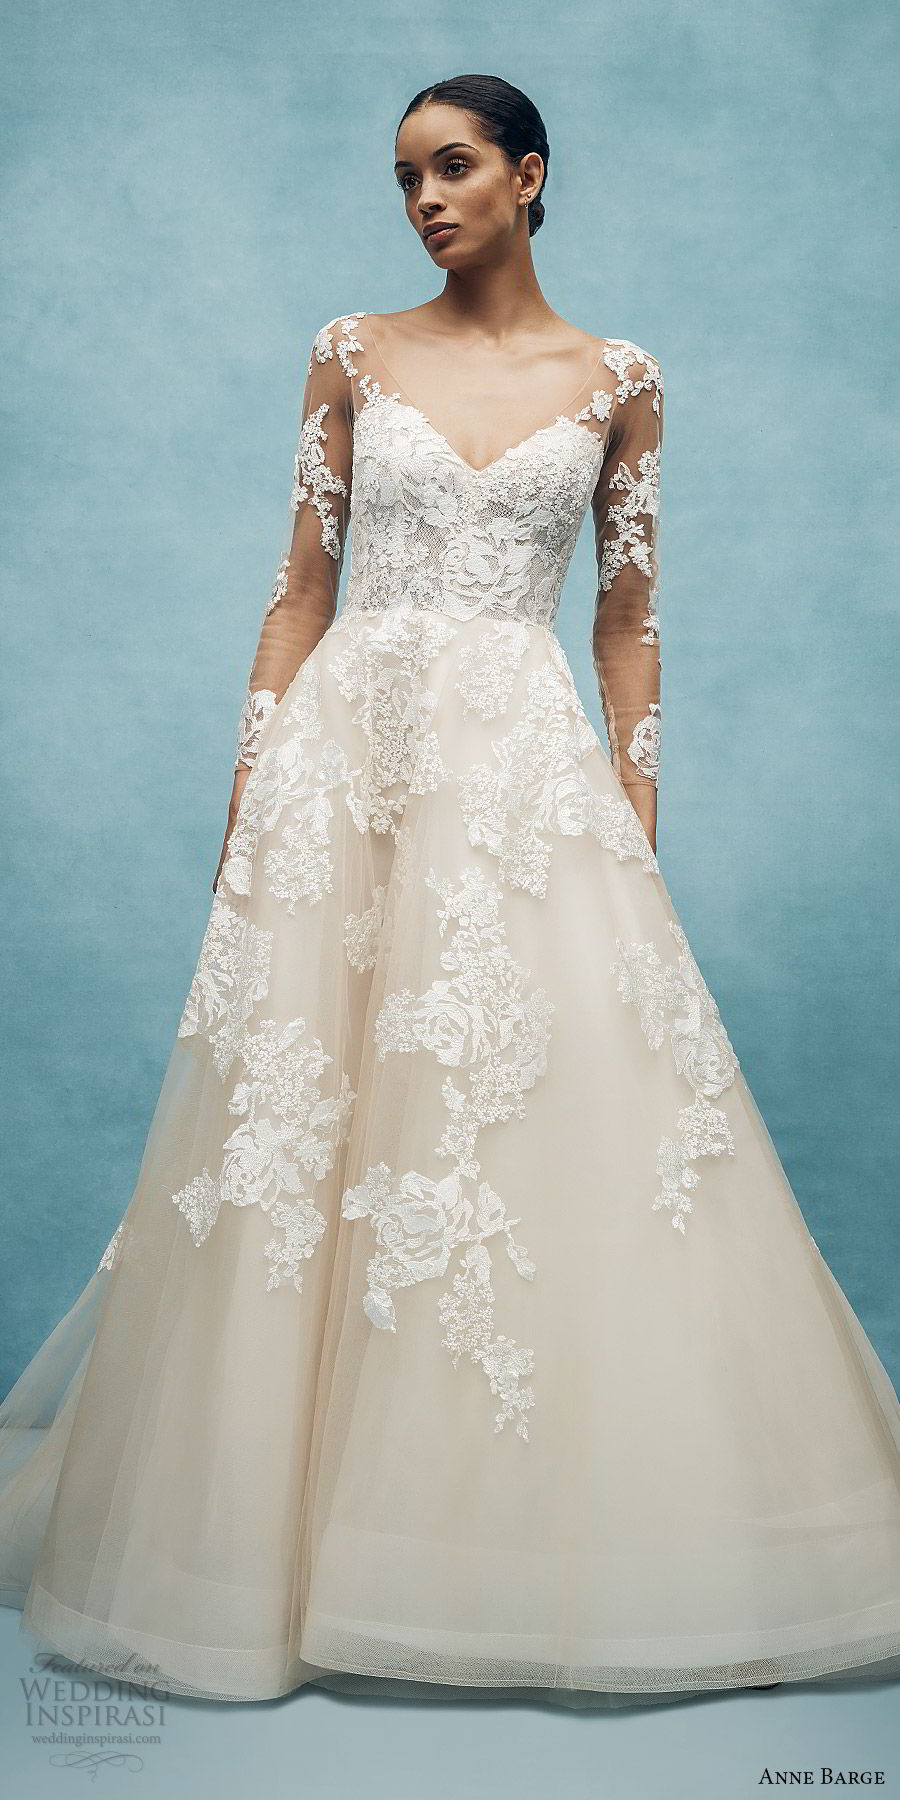 anne barge spring 2020 bridal illusion long sleeves sheer v neck sweetheart lace a line ball gown wedding dress (7) romantic classic chapel train mv